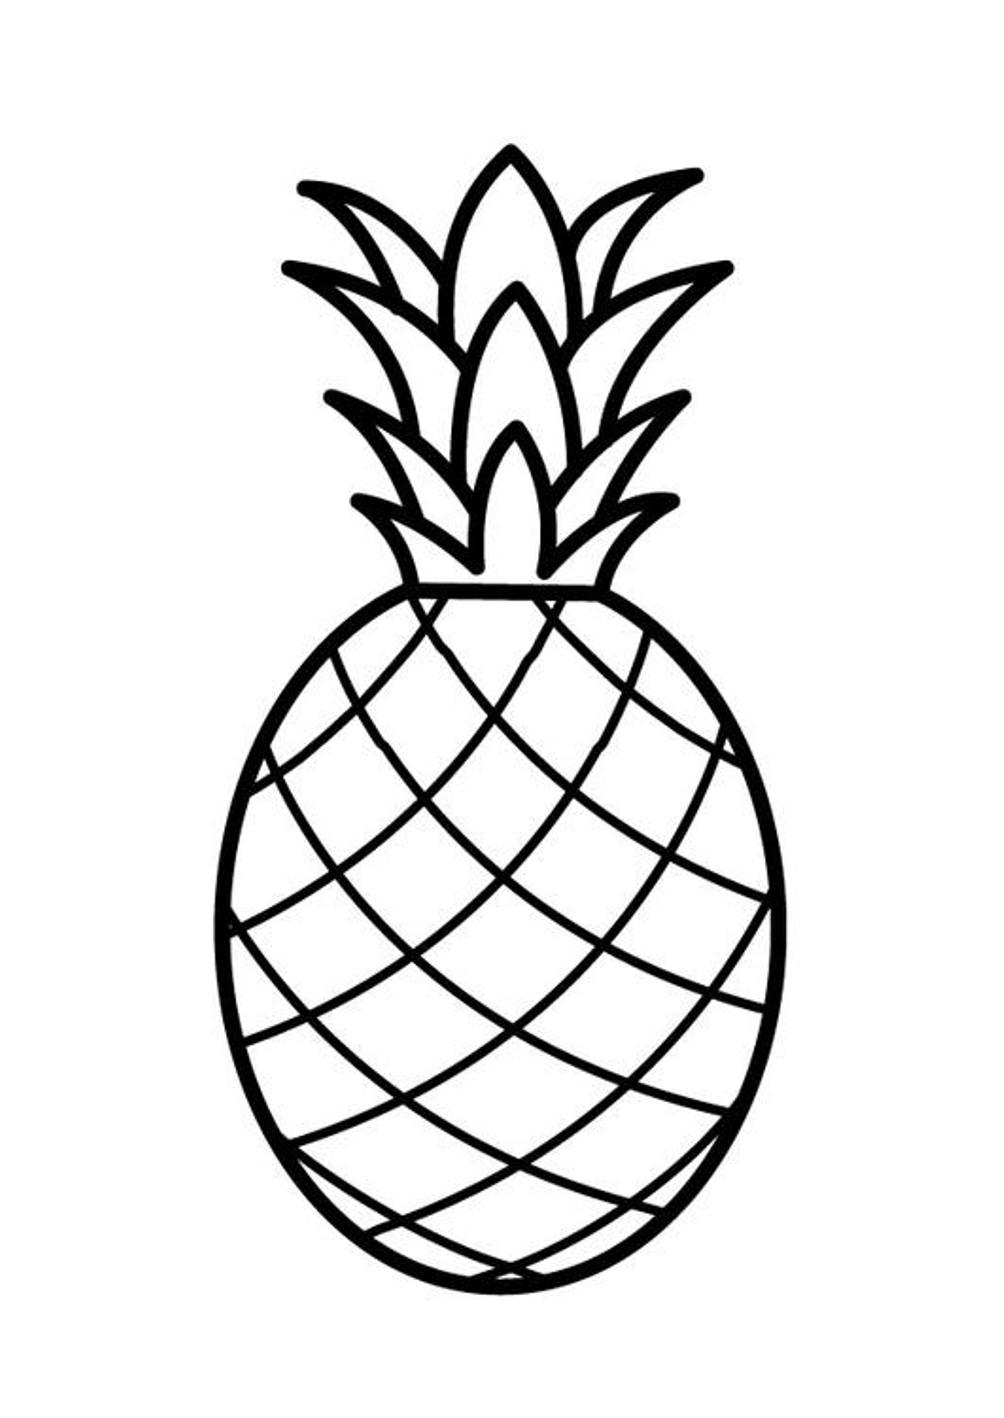 Fruit Coloring Pages for childrens printable for free